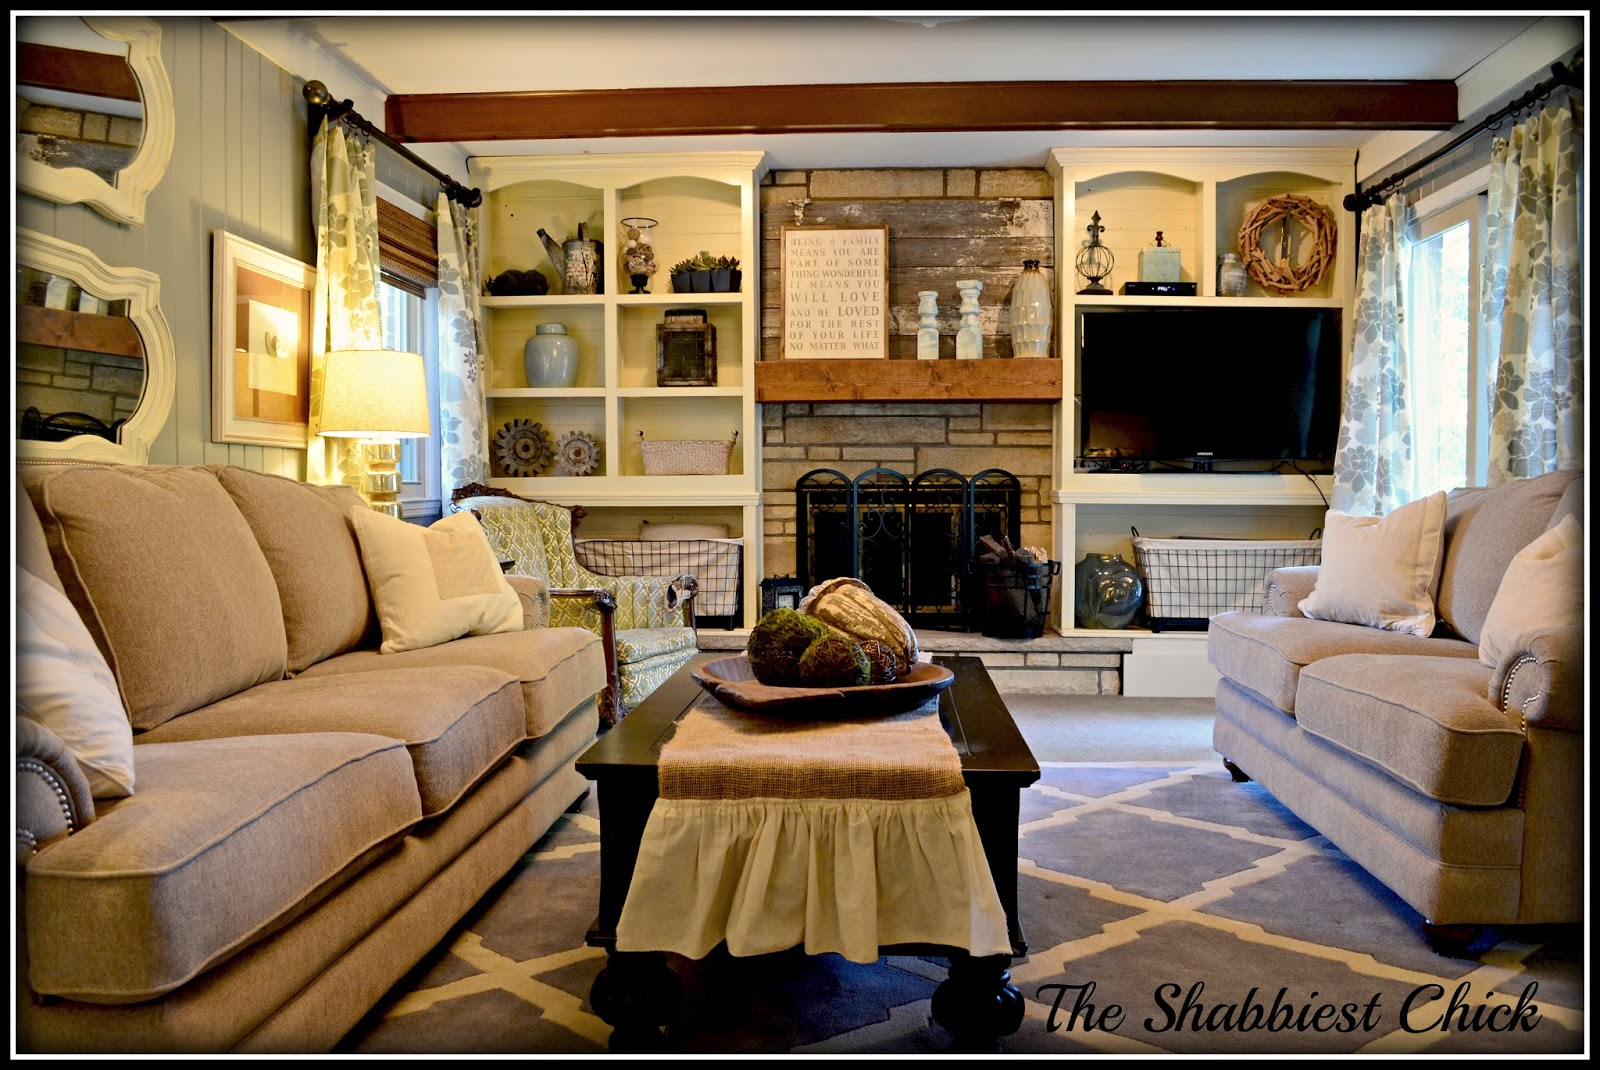 Can you paint wood paneling a color - The Wall Color Is A Lowe S Color Called Stone Mason Gray Mixed In Benjamin Moore Advance Paint The Trim Is White Cloud Also Mixed In Bm Advance